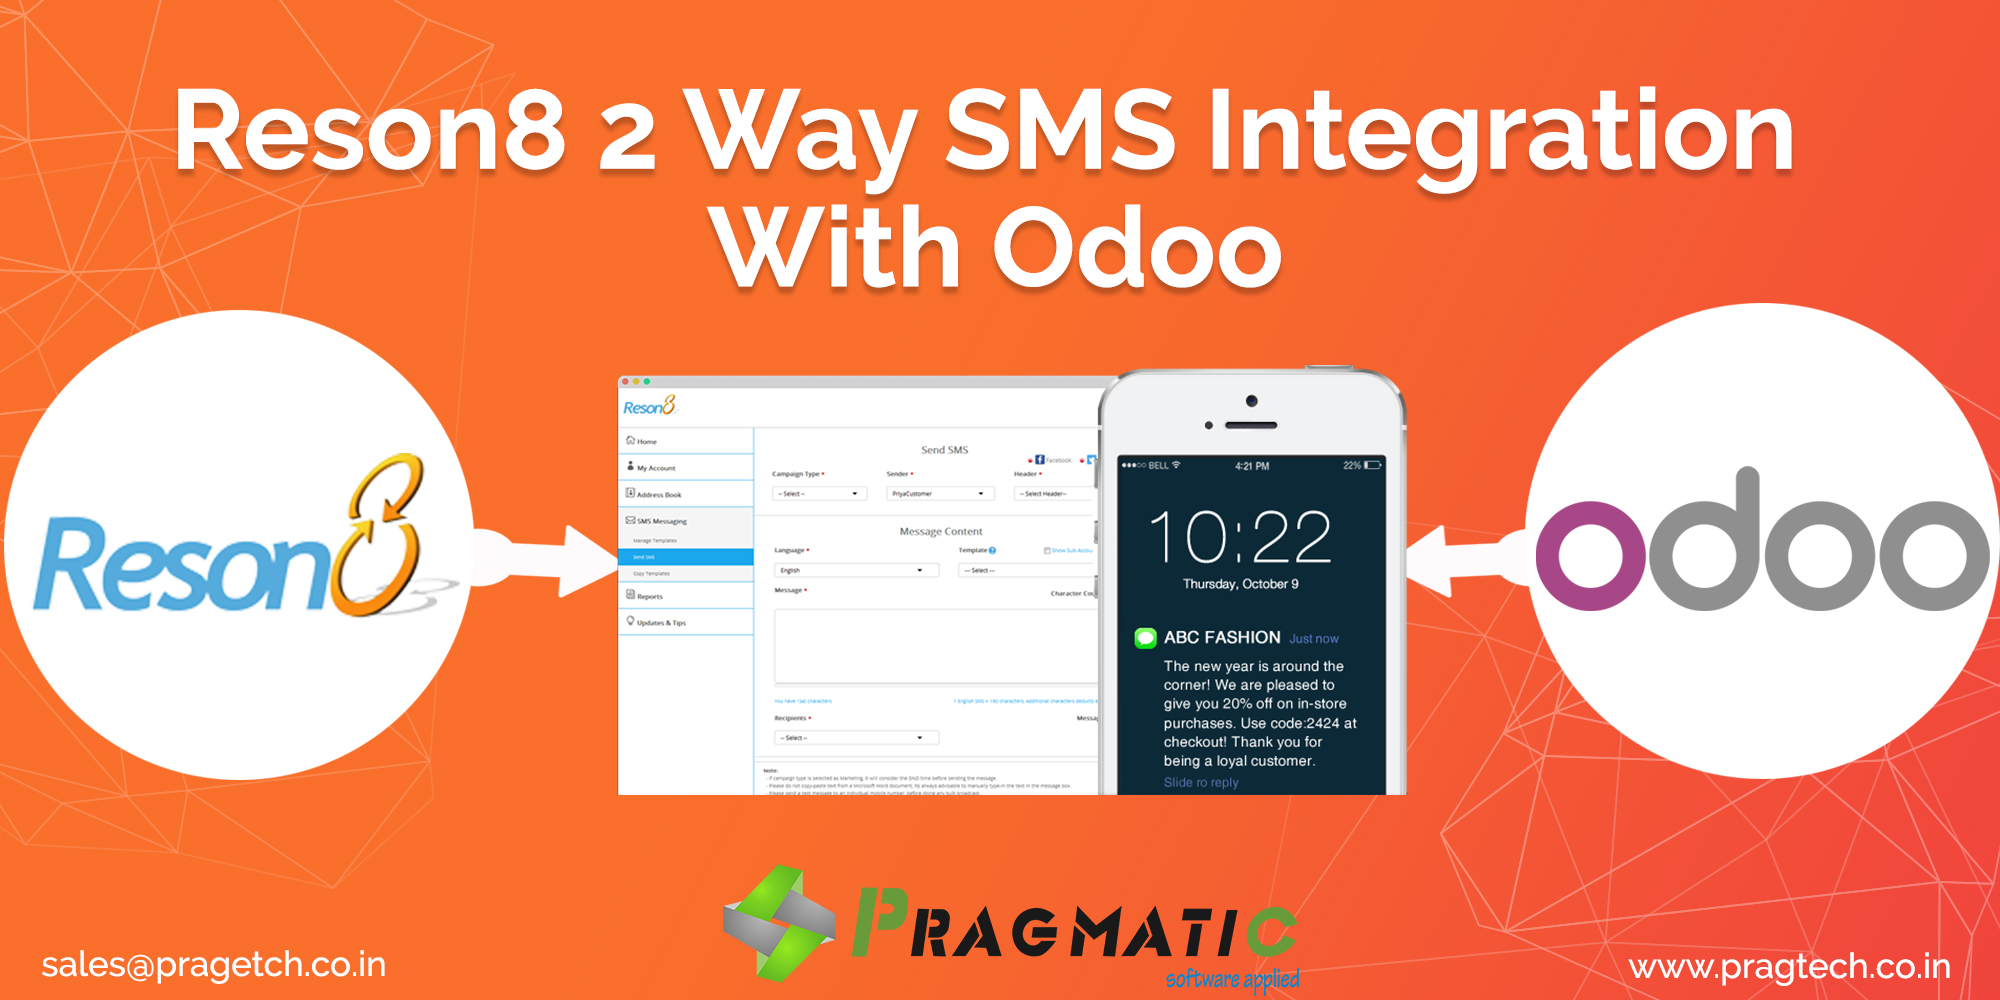 Reson8 2 Way SMS Integration With Odoo